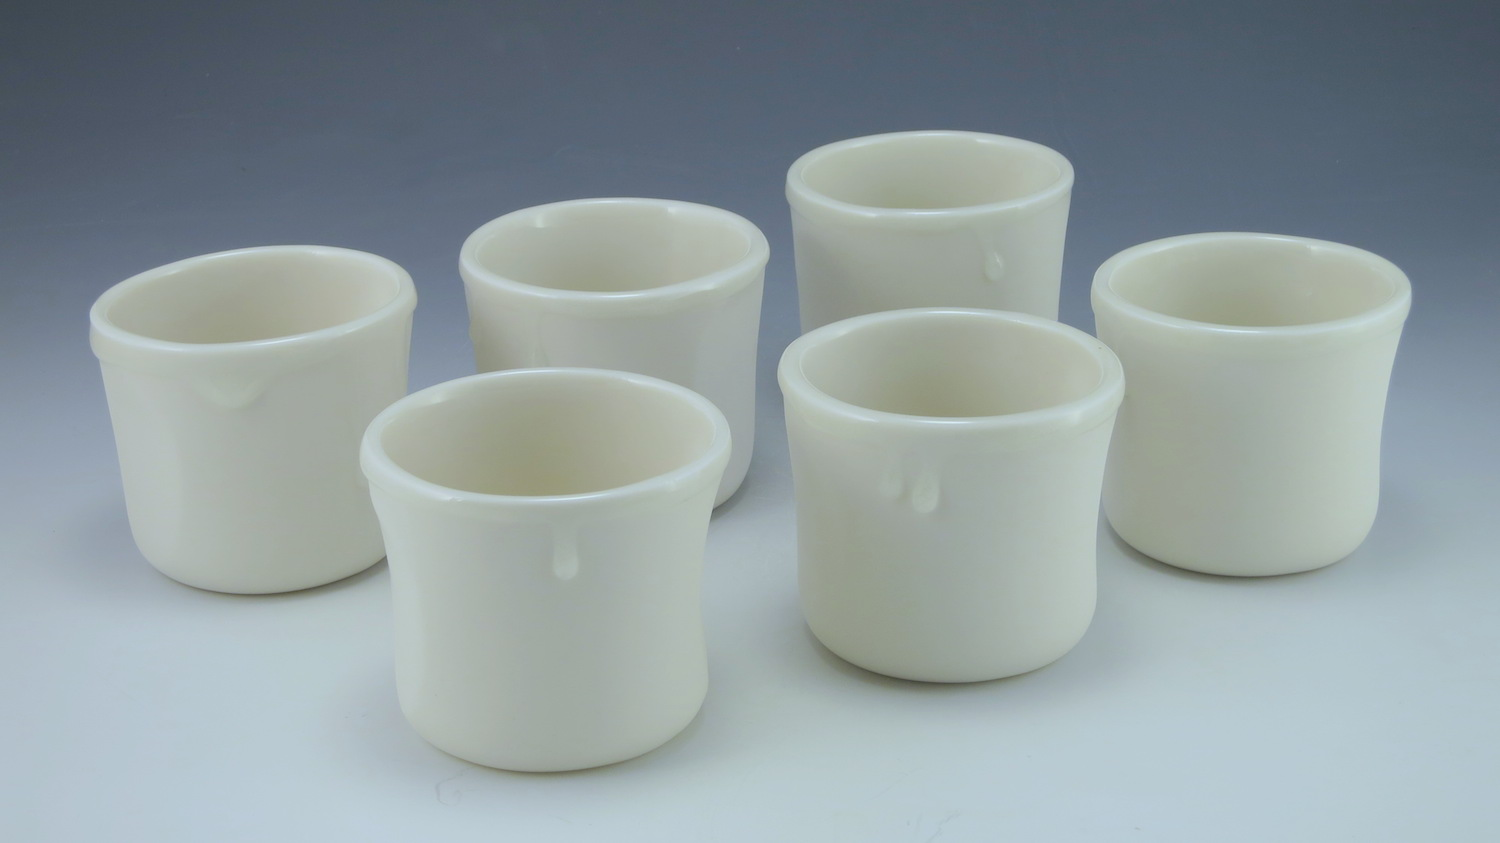 WHITE WHISKY    A pure white 5oz cup, with a clear juicy glaze that slops over the rim and runs in heavy drips down the side.  Thumb and forefinger cut outs help the cup nestle in your hand, as does the little tuck on the underside of the cup.  Made from my purest porcelain slip, these cups are sanded at every stage and their smooth, silky surface caresses your fingers, while the glaze drips give them something to play with.     Made with late night whiskey sessions in mind.